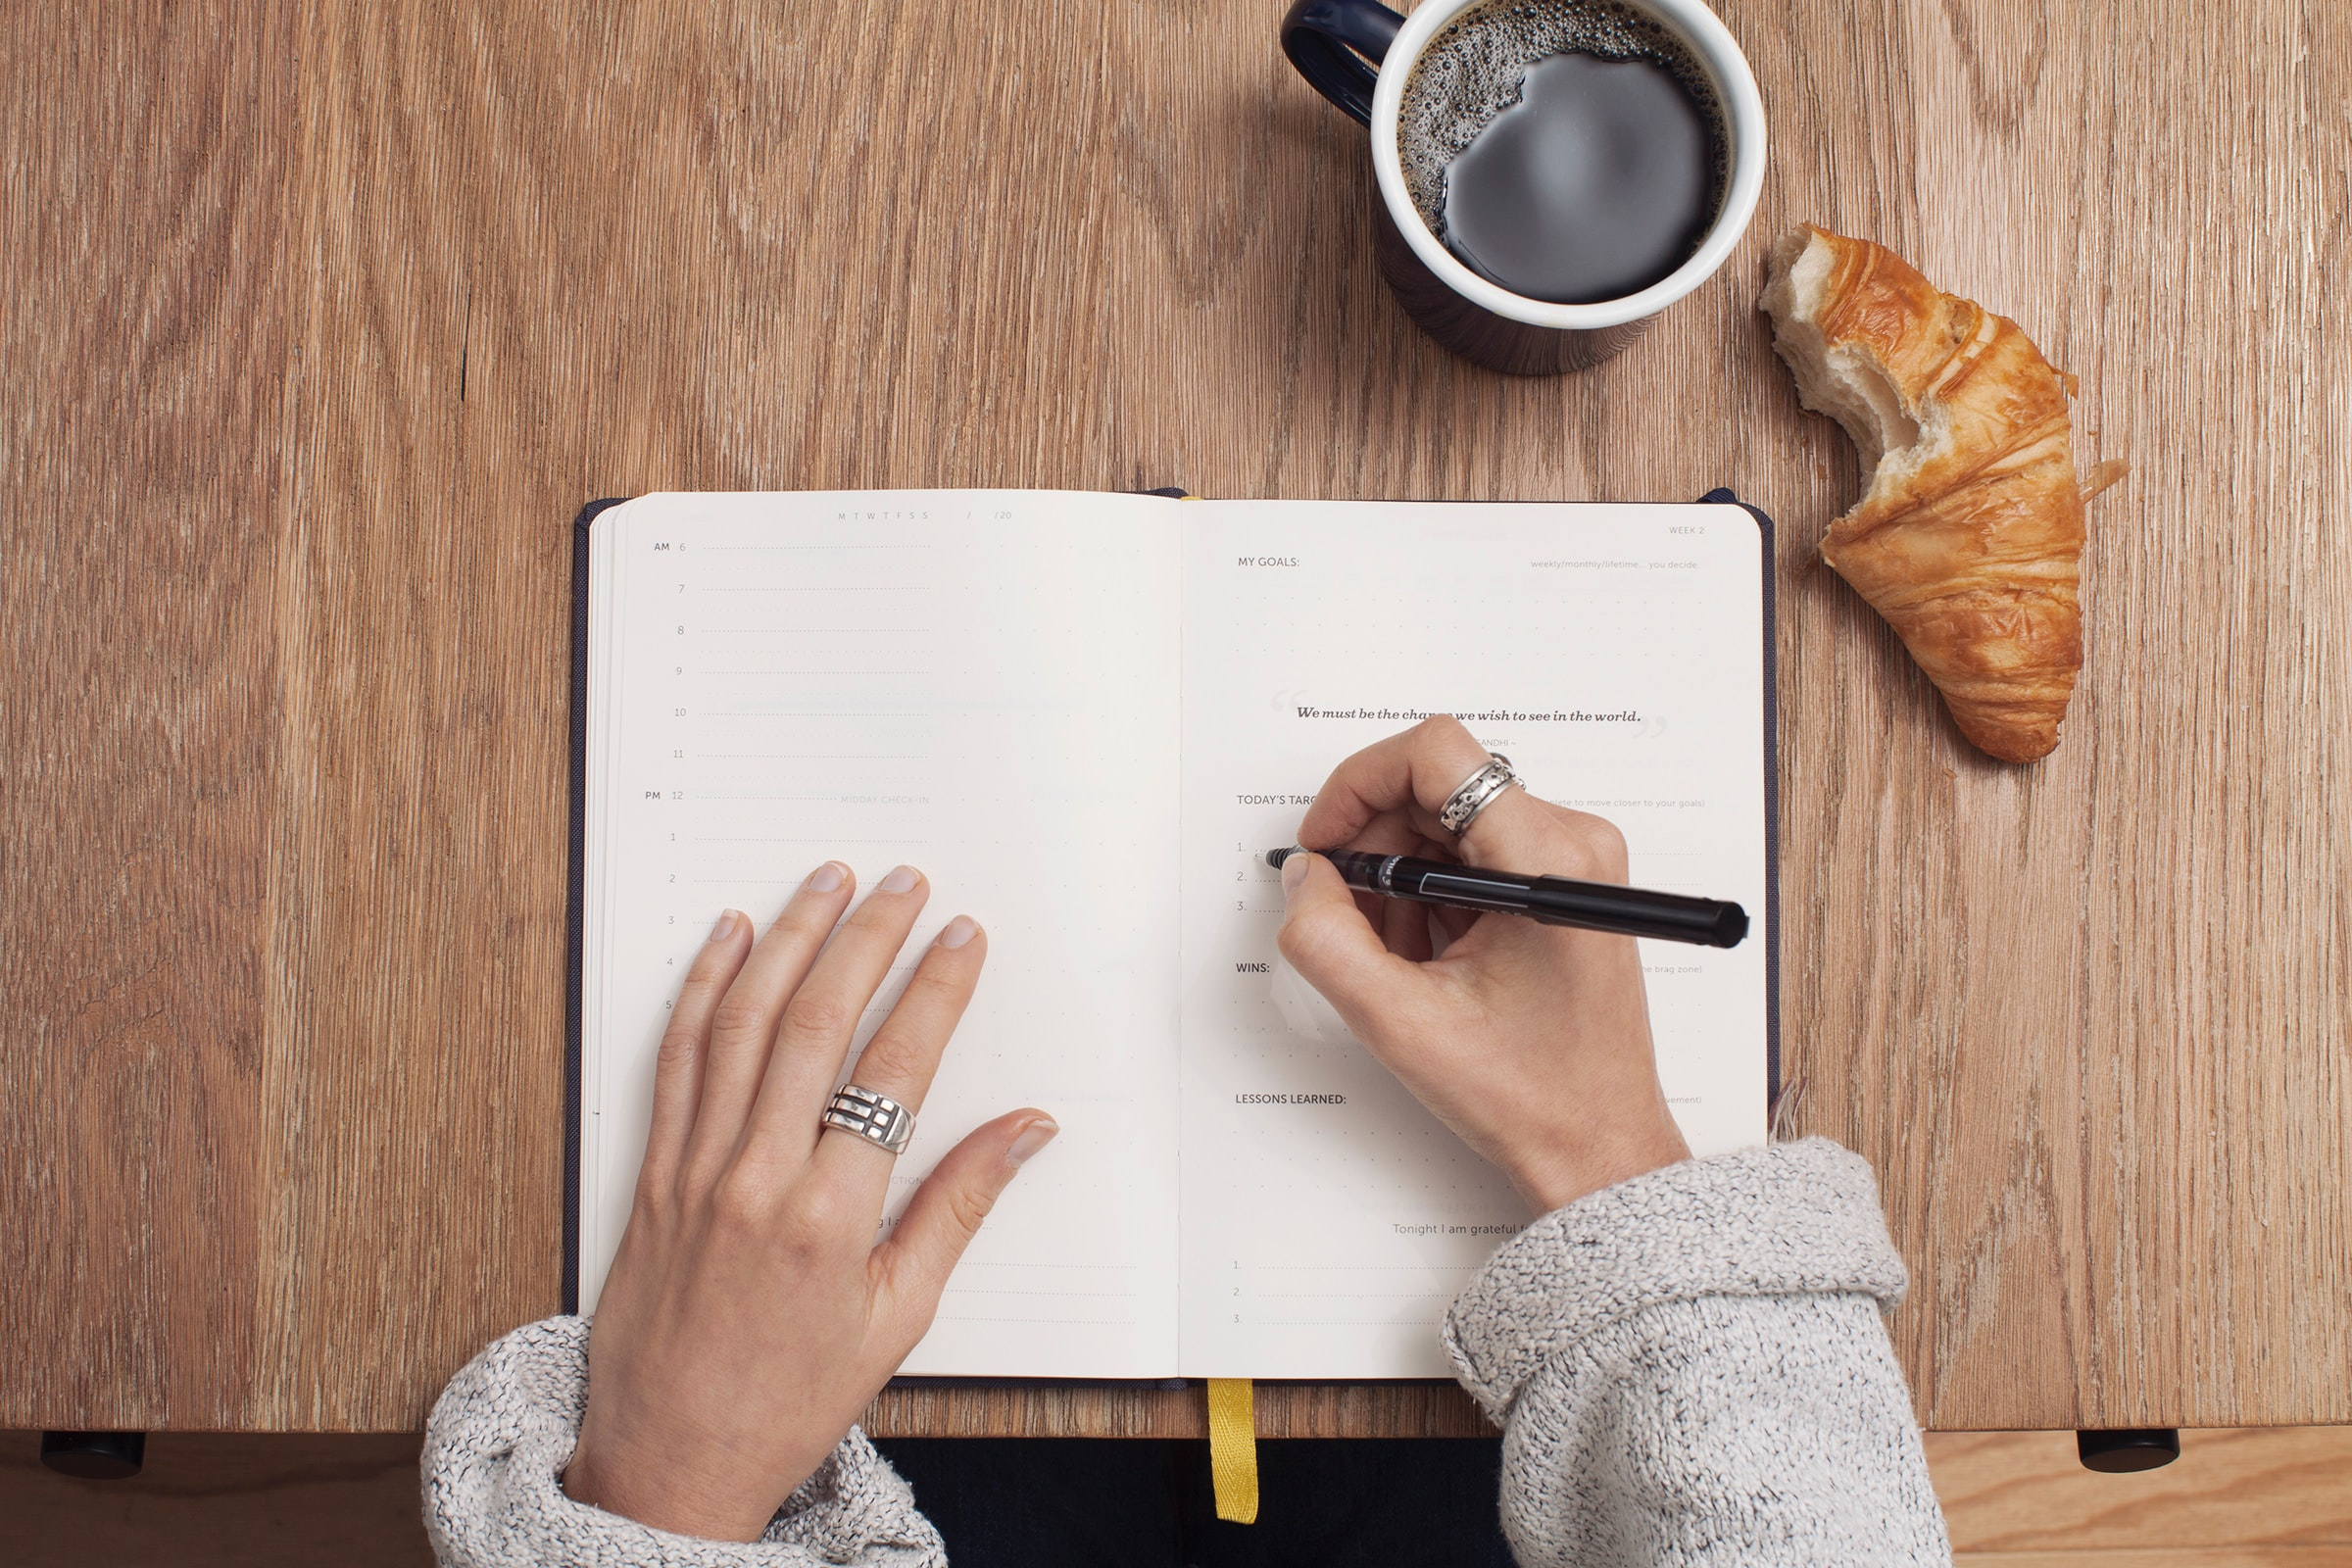 person writing in their calendar with a snack and coffee also on the desk